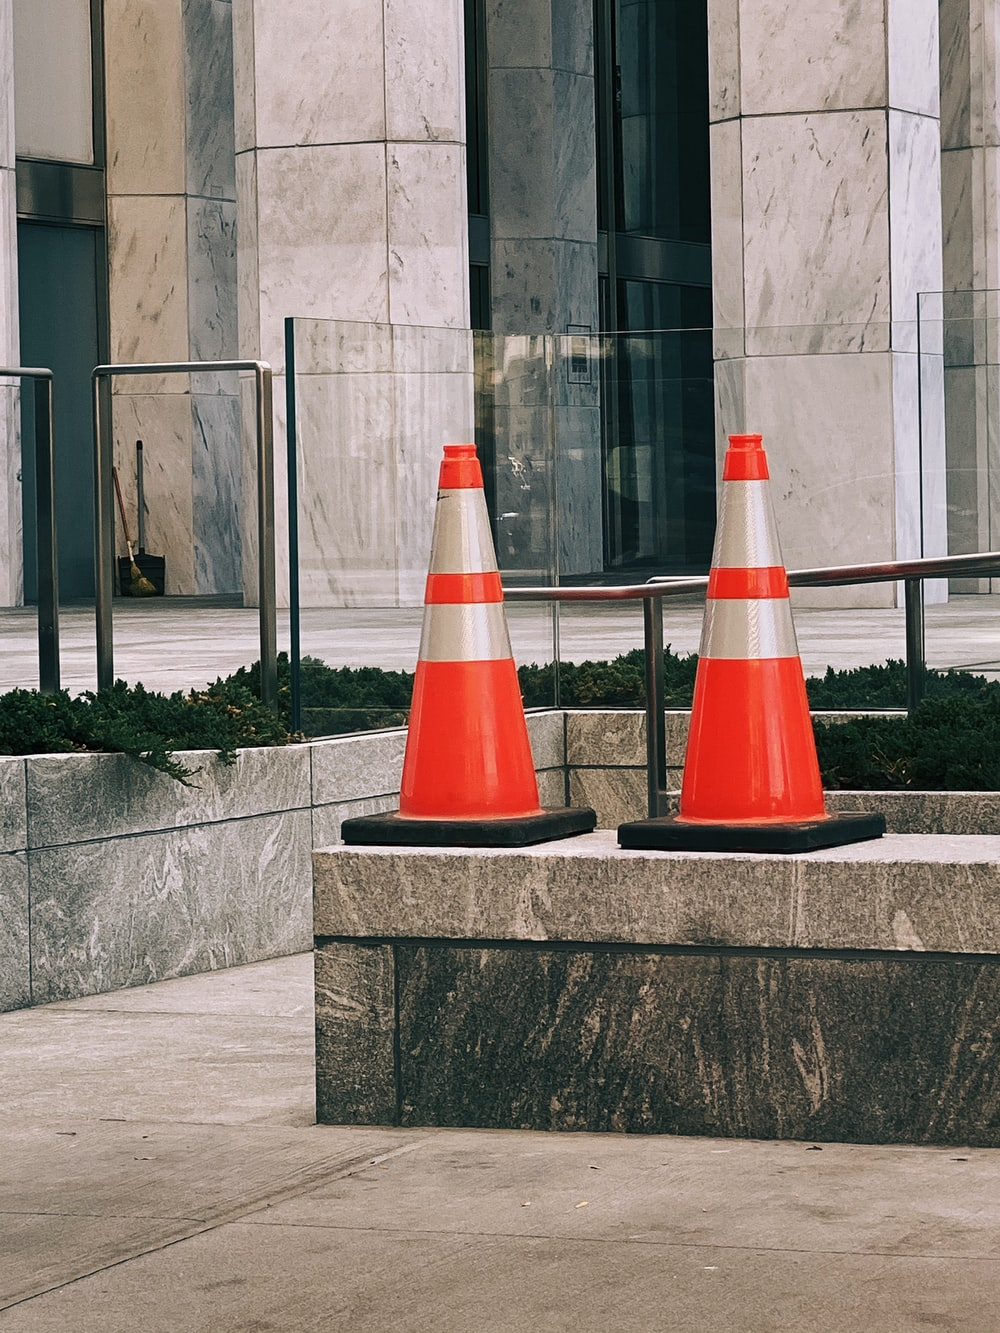 two red-and-white traffic cones